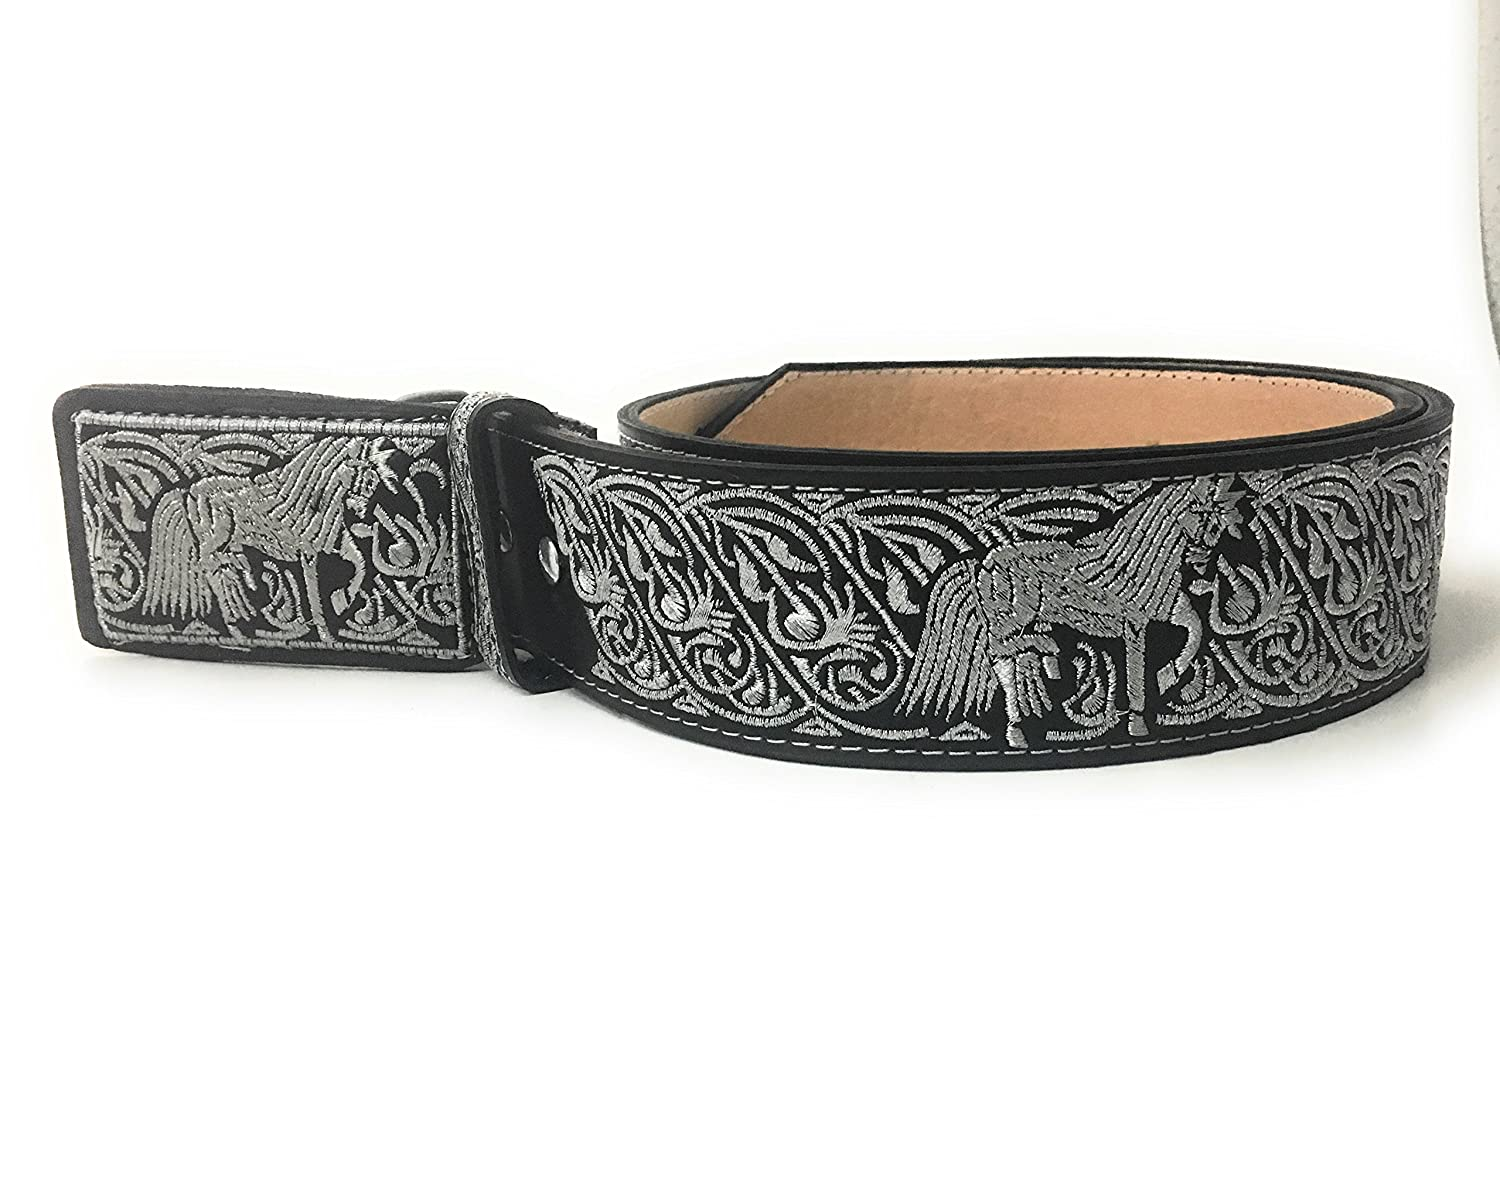 CINTO CHARRO BORDADO. WESTERN BELT. CINTURON VAQUERO PITIADO at Amazon  Men s Clothing store  a9f41ce6de2b